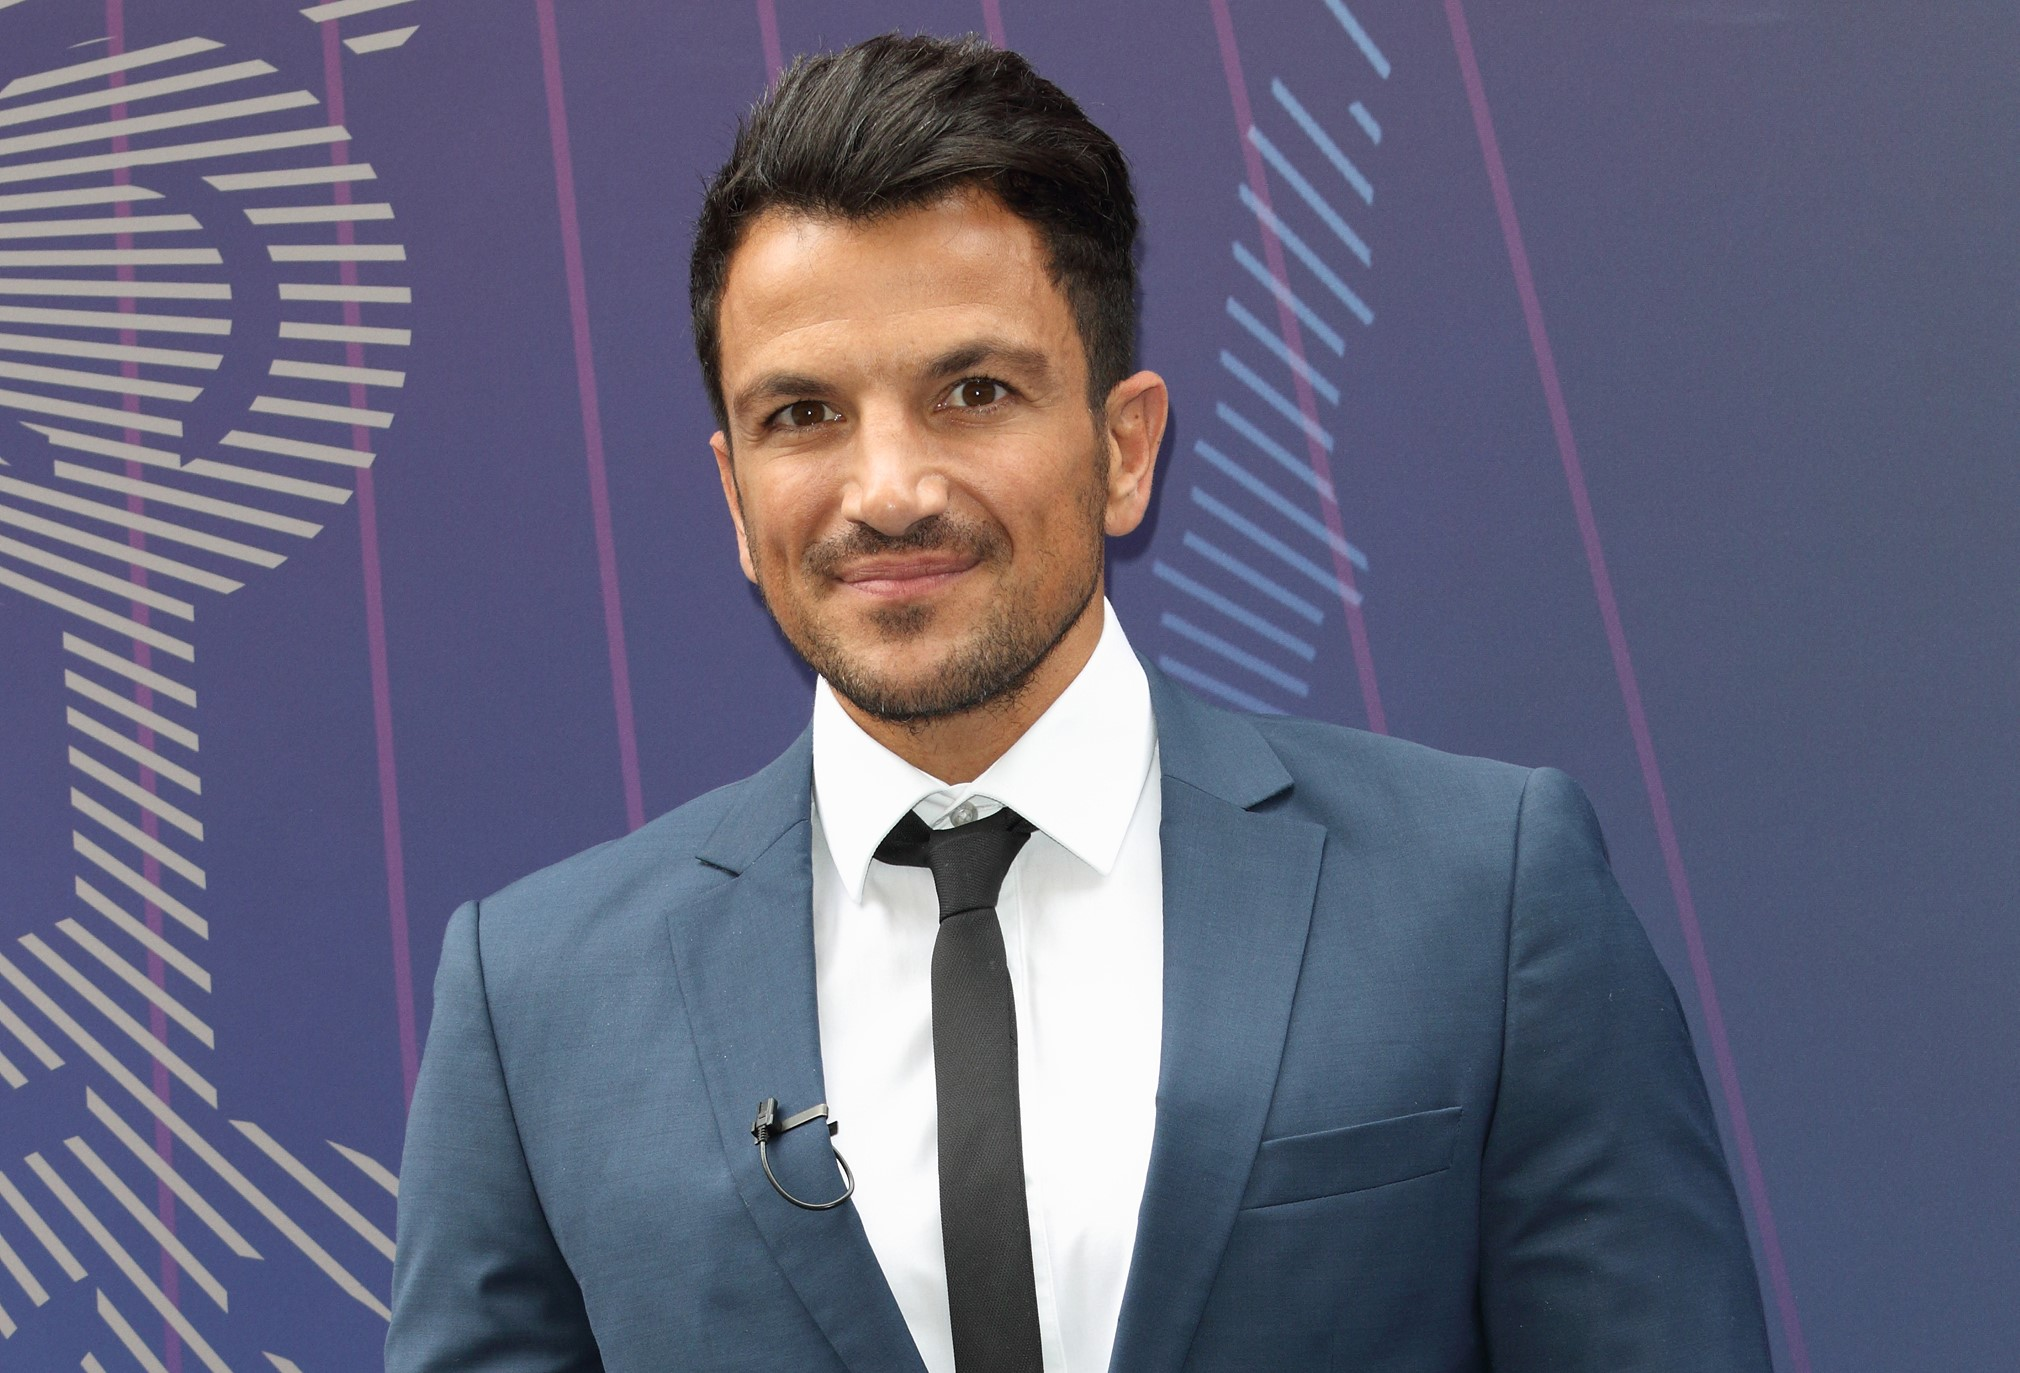 Peter Andre baffled by son Junior's rapping skills in funny video